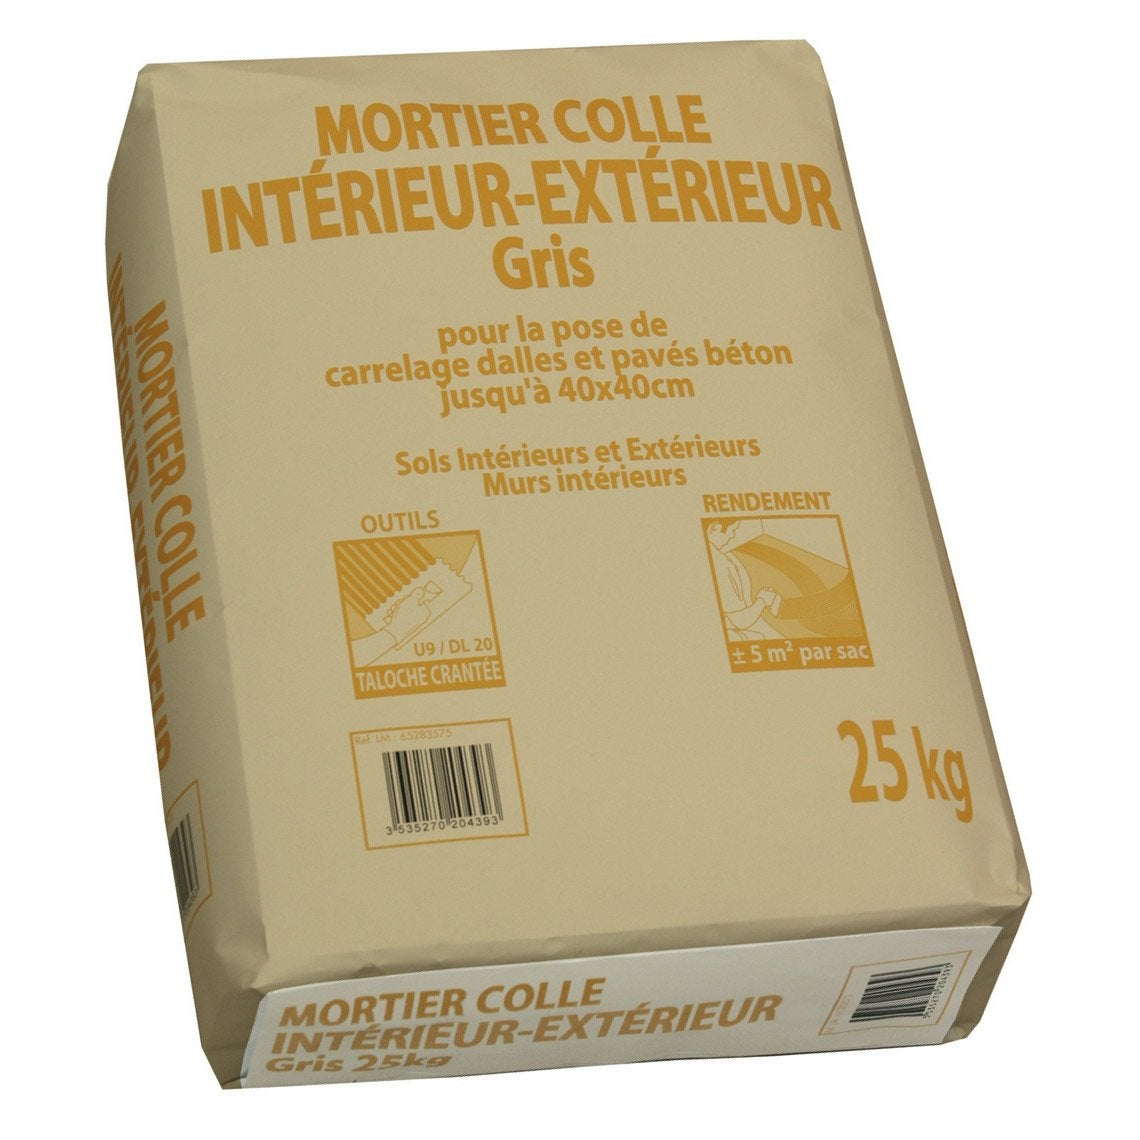 Colle pour carrelage int rieur ext rieur gris prb 25kg for Colle ciment exterieur